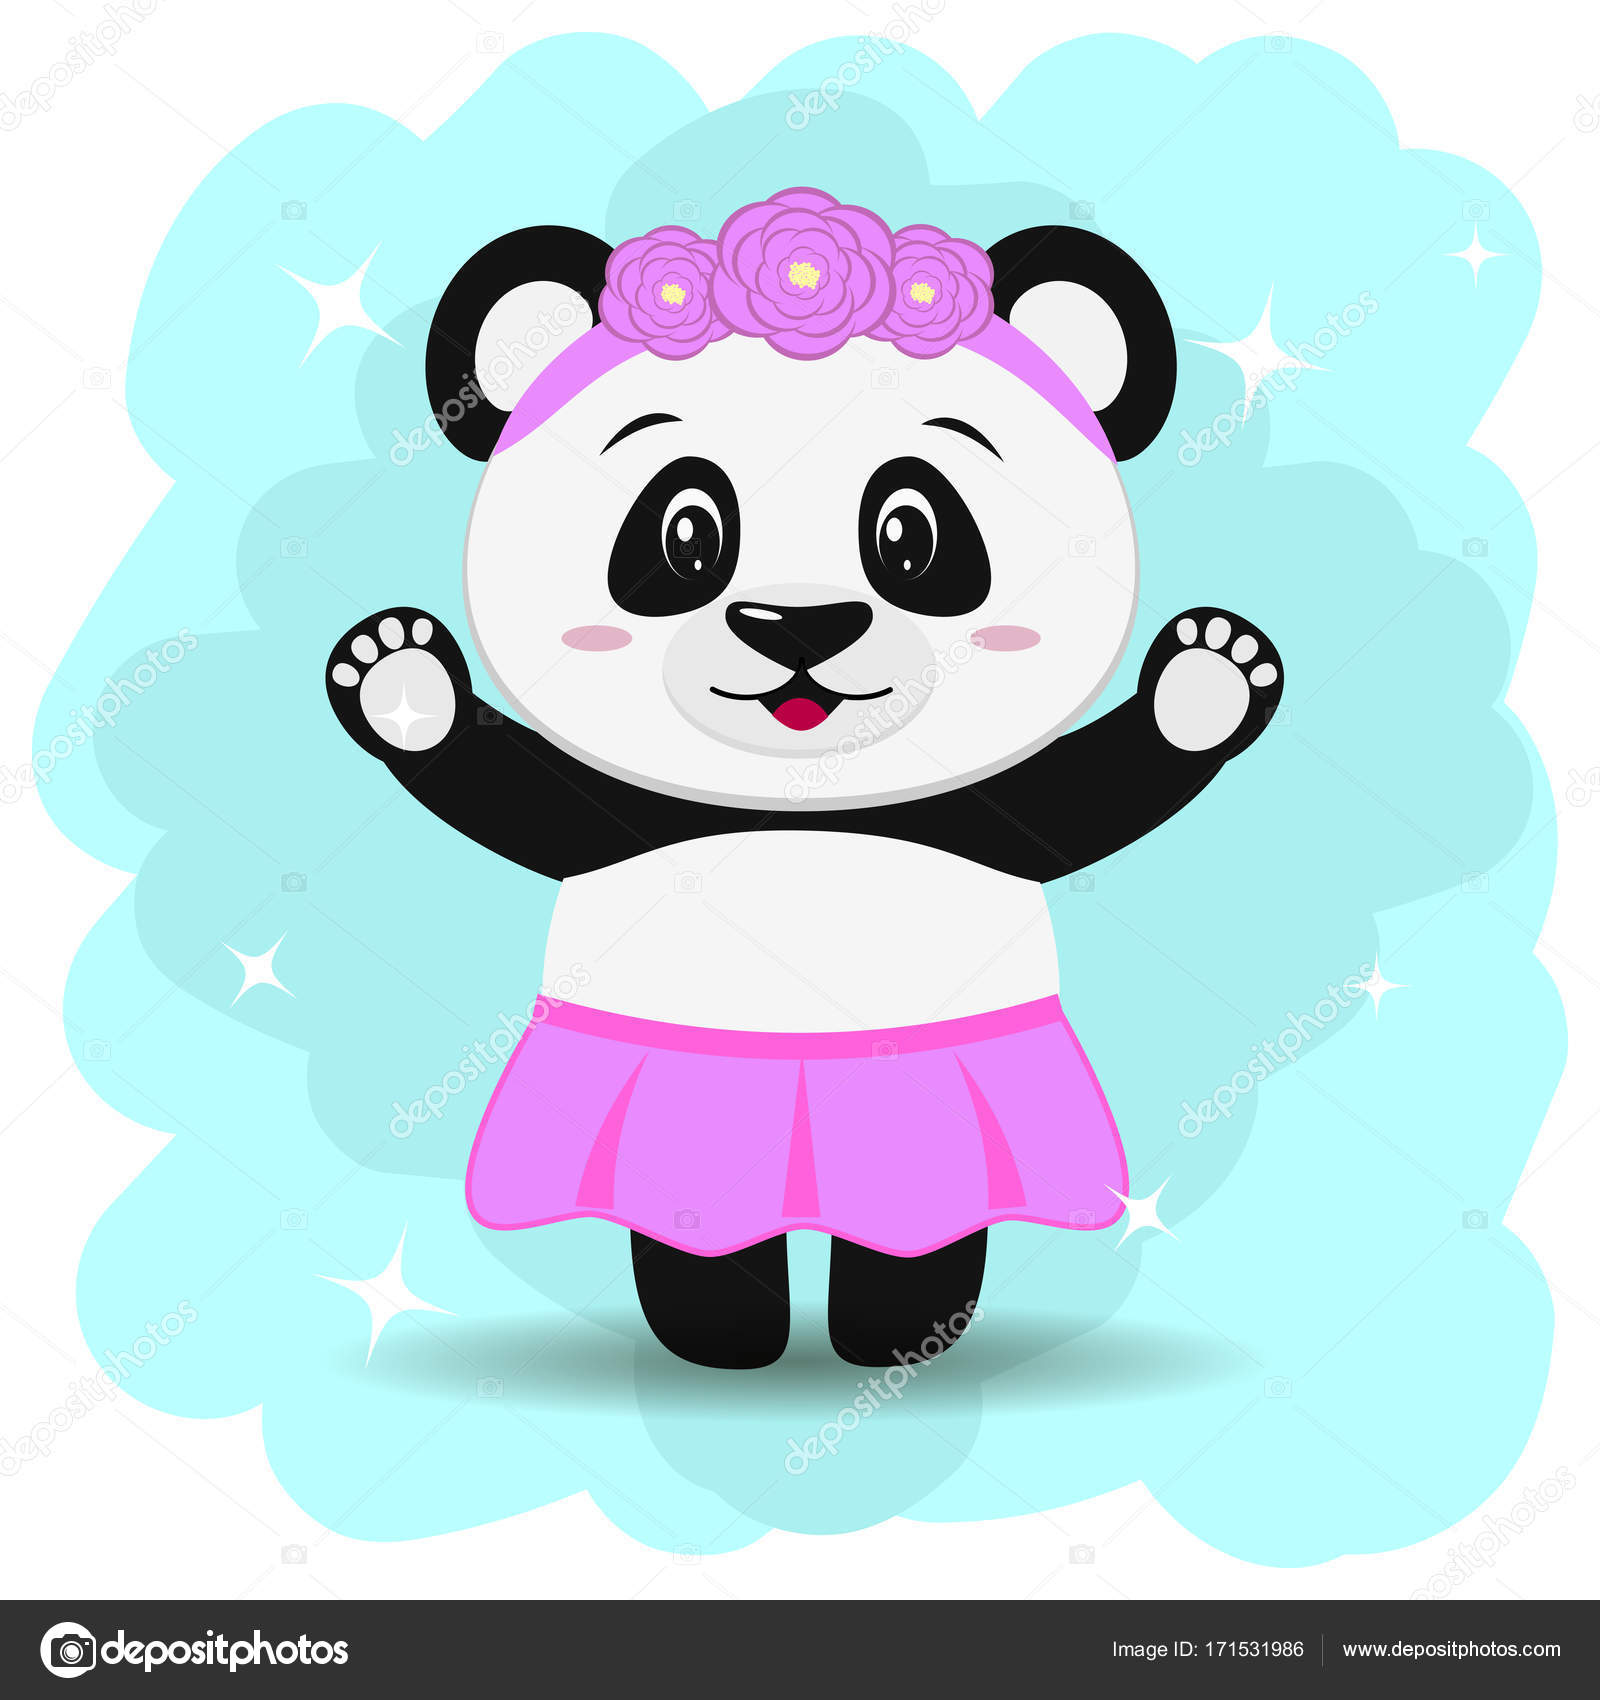 Animated Skirt a sweet panda in a skirt and with a wreath, in the style of